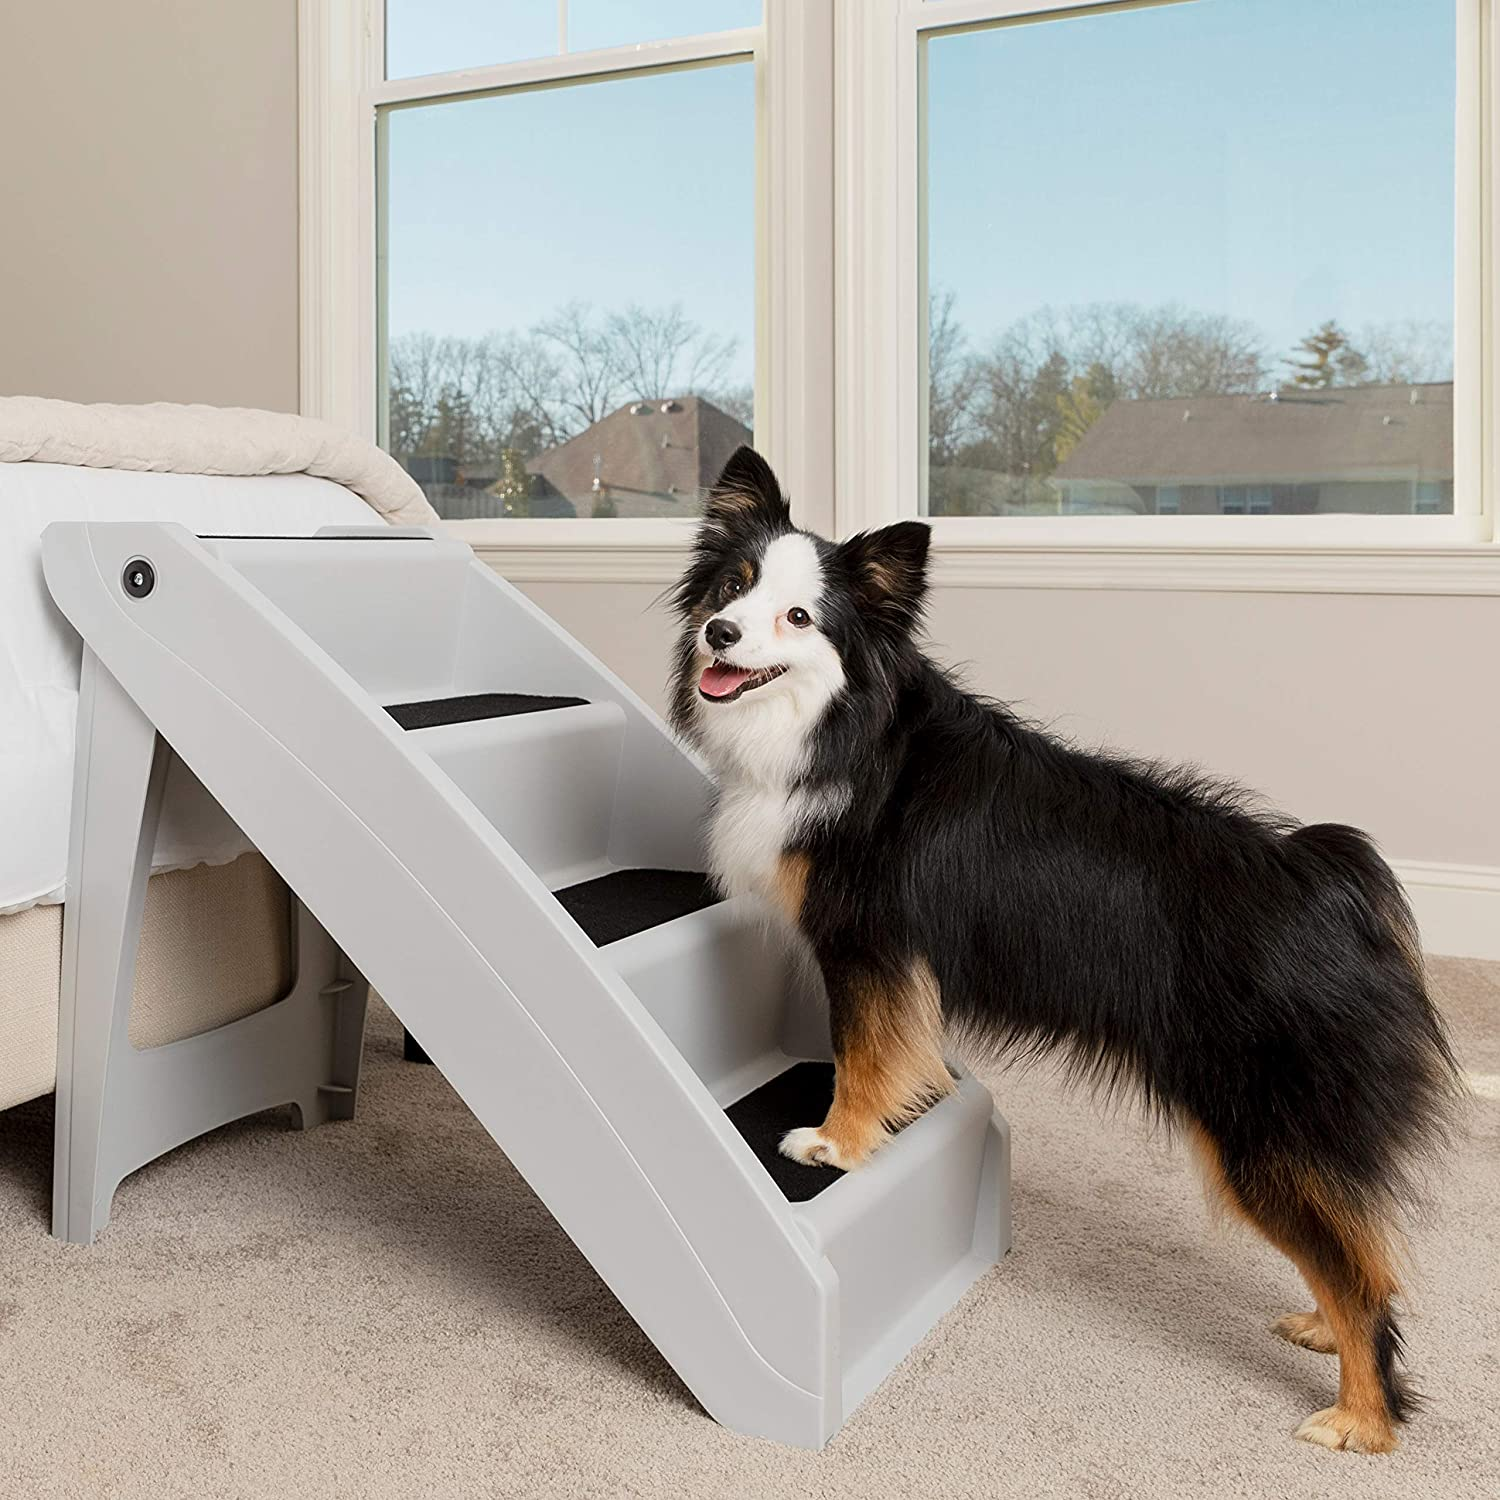 2-in-1 Unique Nice Durable Space Saver Portable Folding Pet Stairs for Dogs Wood Safety Beside Cat Ramp Steps Accent